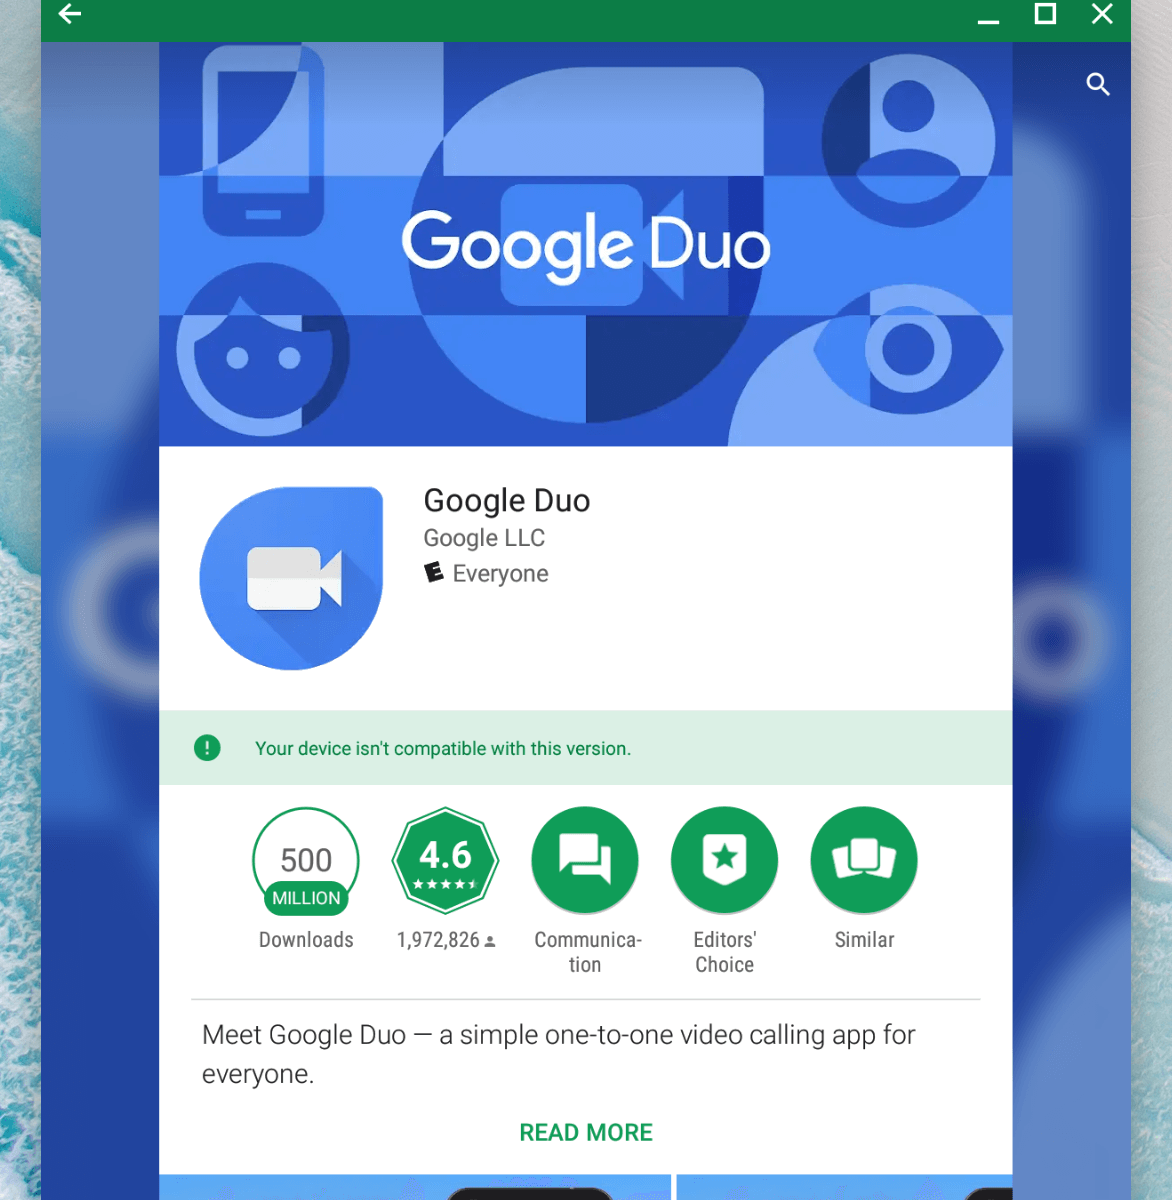 Google Duo Installer on Chrome OS